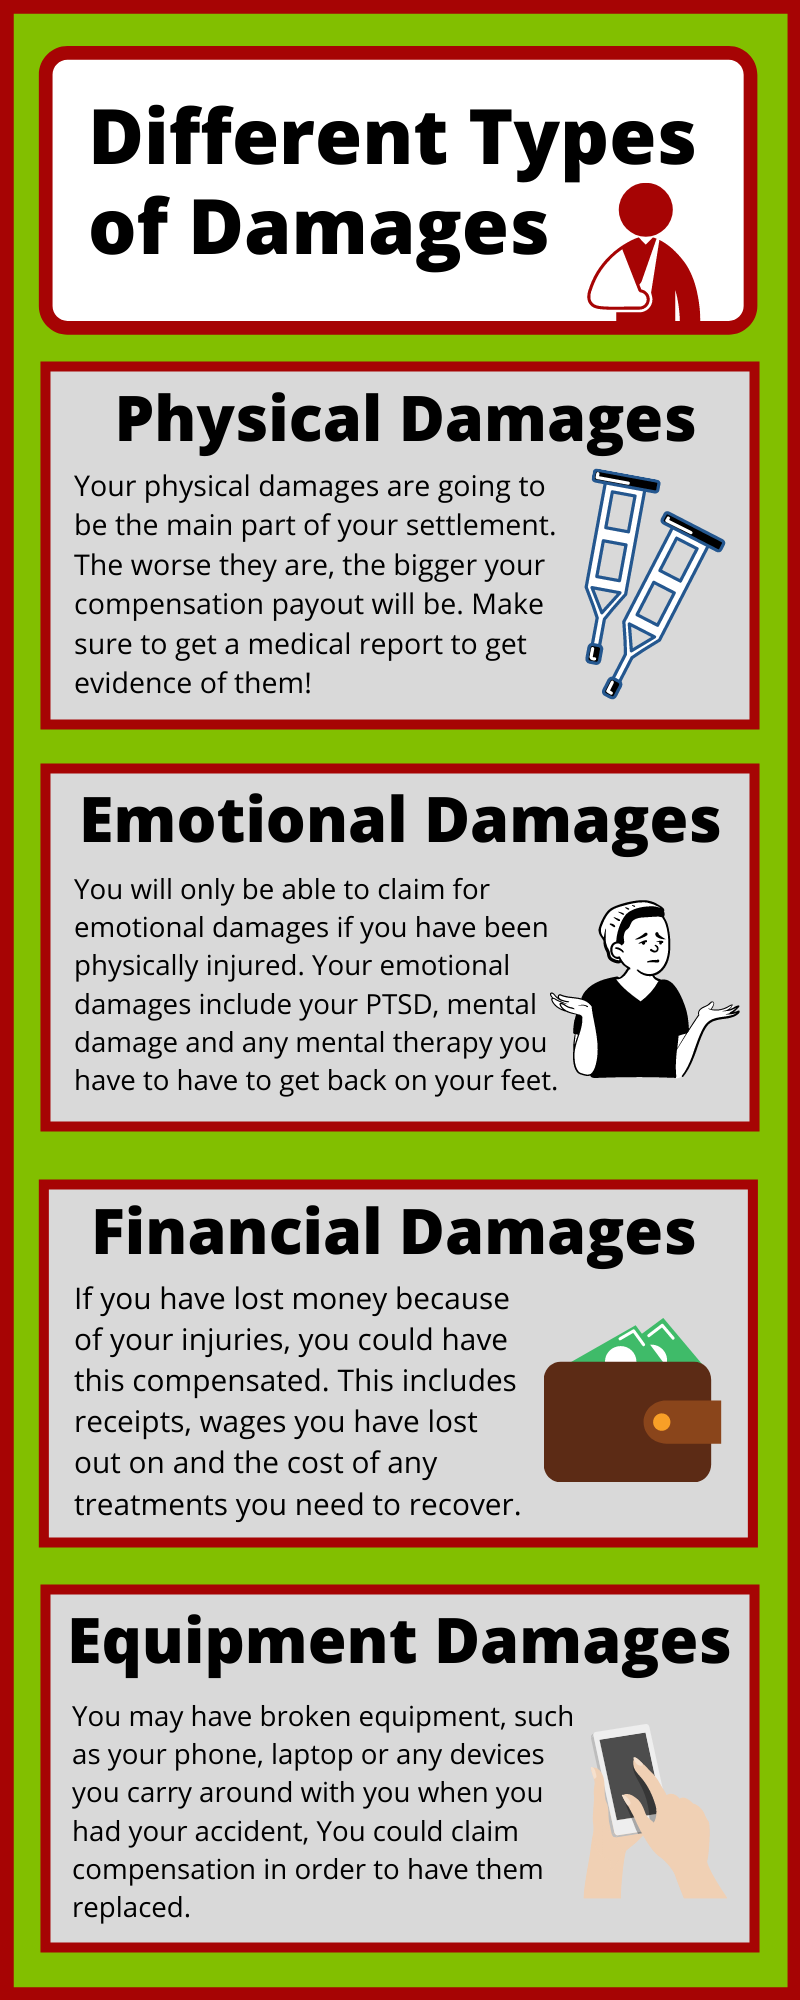 Different Types of Damages with Public Accidents Claim